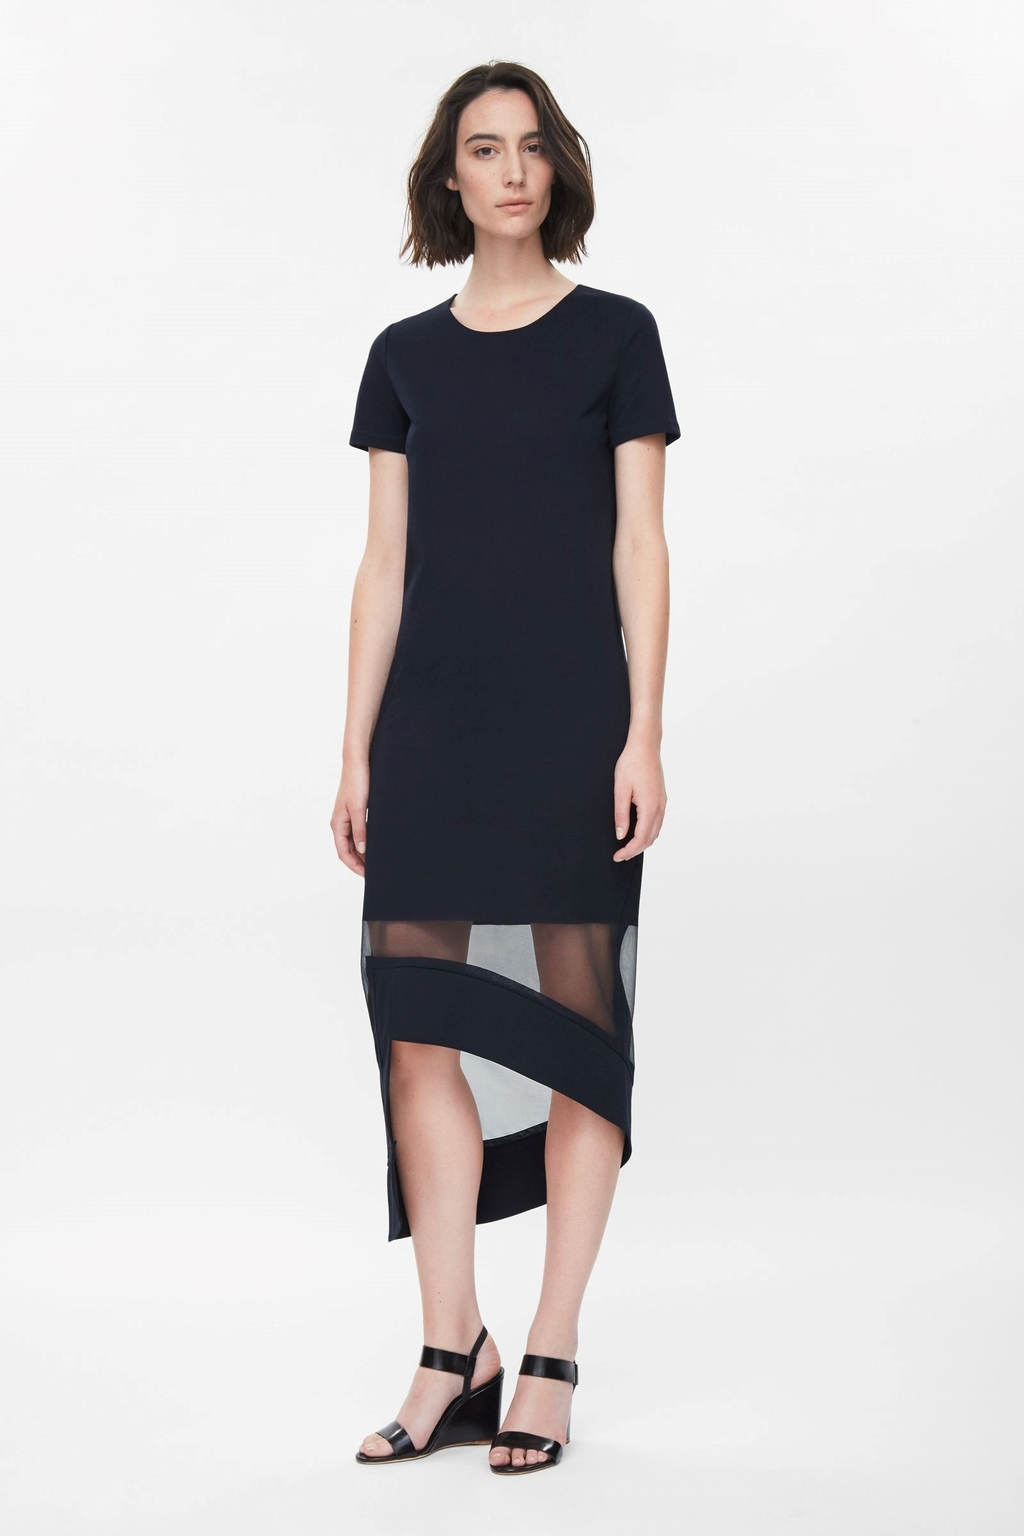 Sheer Hem Dress - length: below the knee; neckline: round neck; pattern: plain; predominant colour: black; occasions: evening, occasion; fit: body skimming; style: asymmetric (hem); fibres: cotton - stretch; sleeve length: short sleeve; sleeve style: standard; pattern type: fabric; texture group: jersey - stretchy/drapey; season: s/s 2015; wardrobe: event; embellishment: contrast fabric; embellishment location: hip